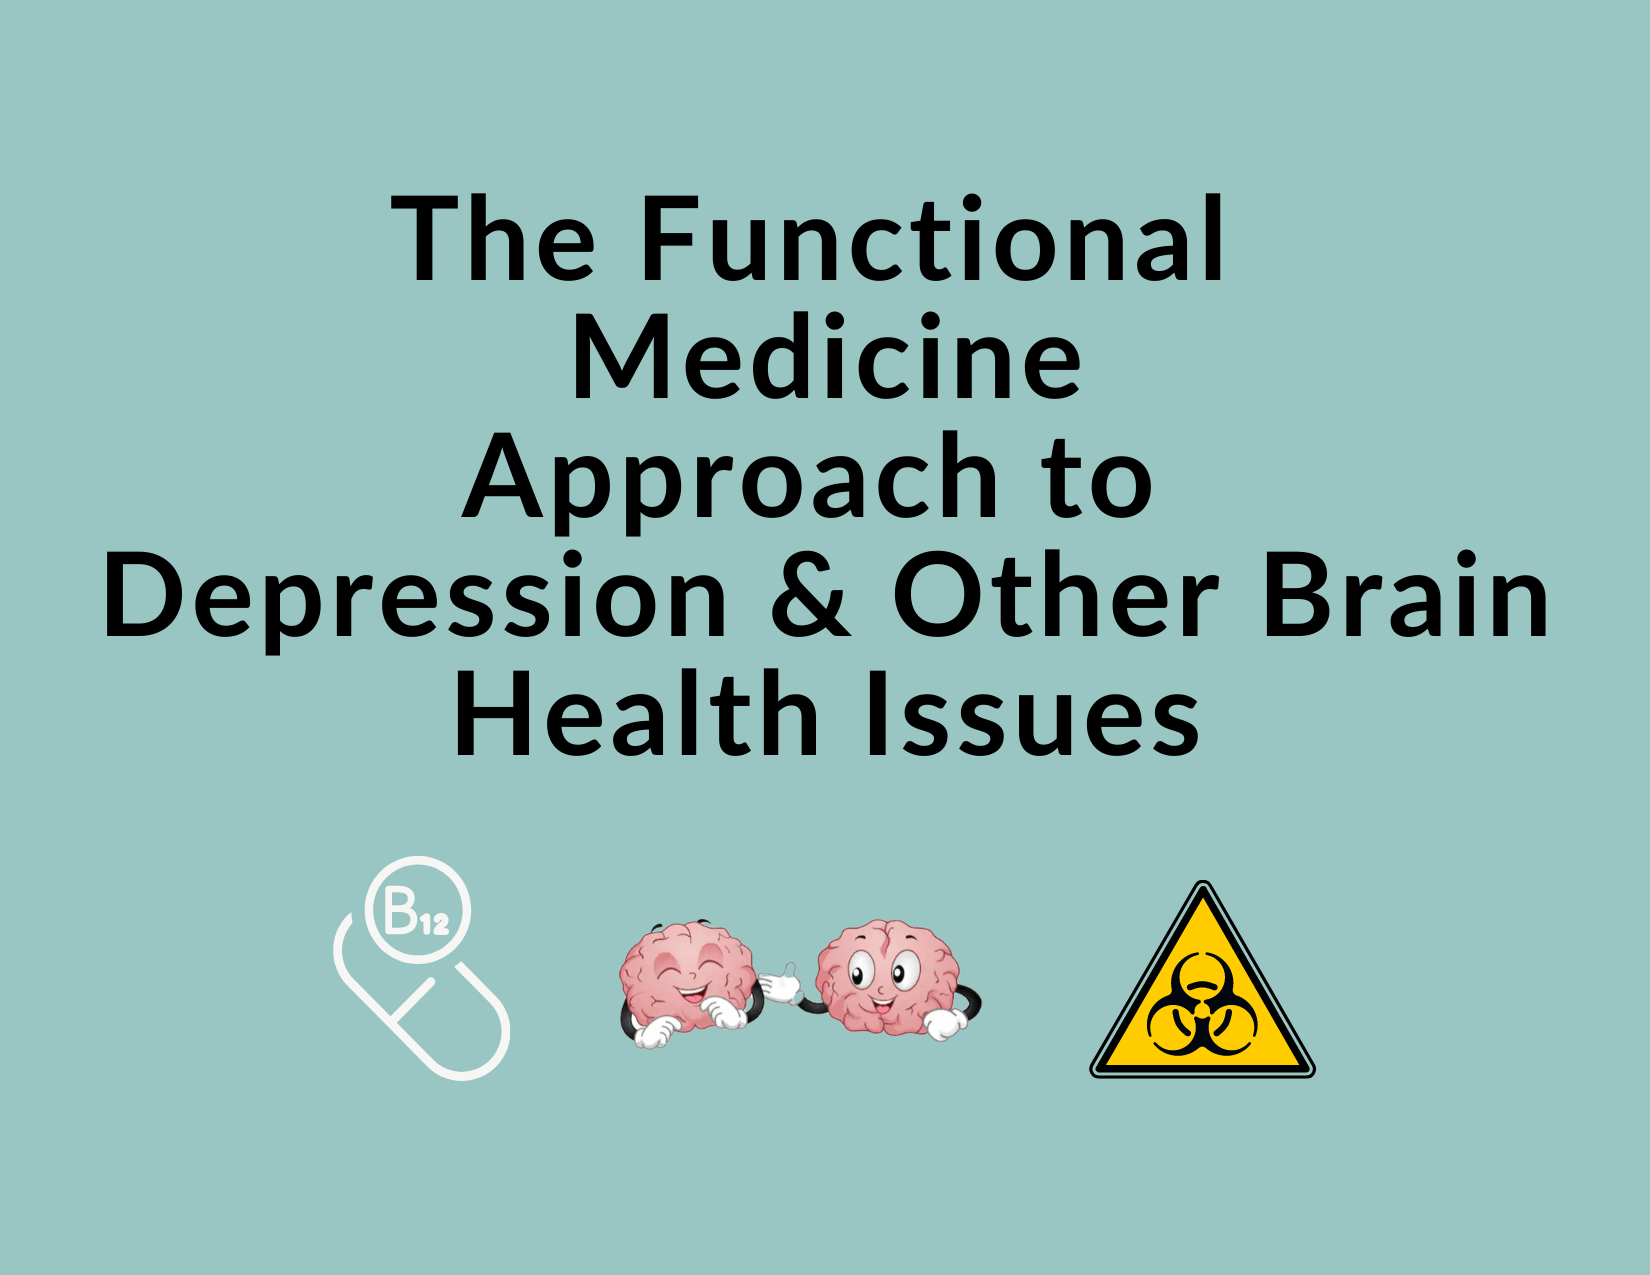 Functional Medicine Approach to Depression & Other Brain Health Issues